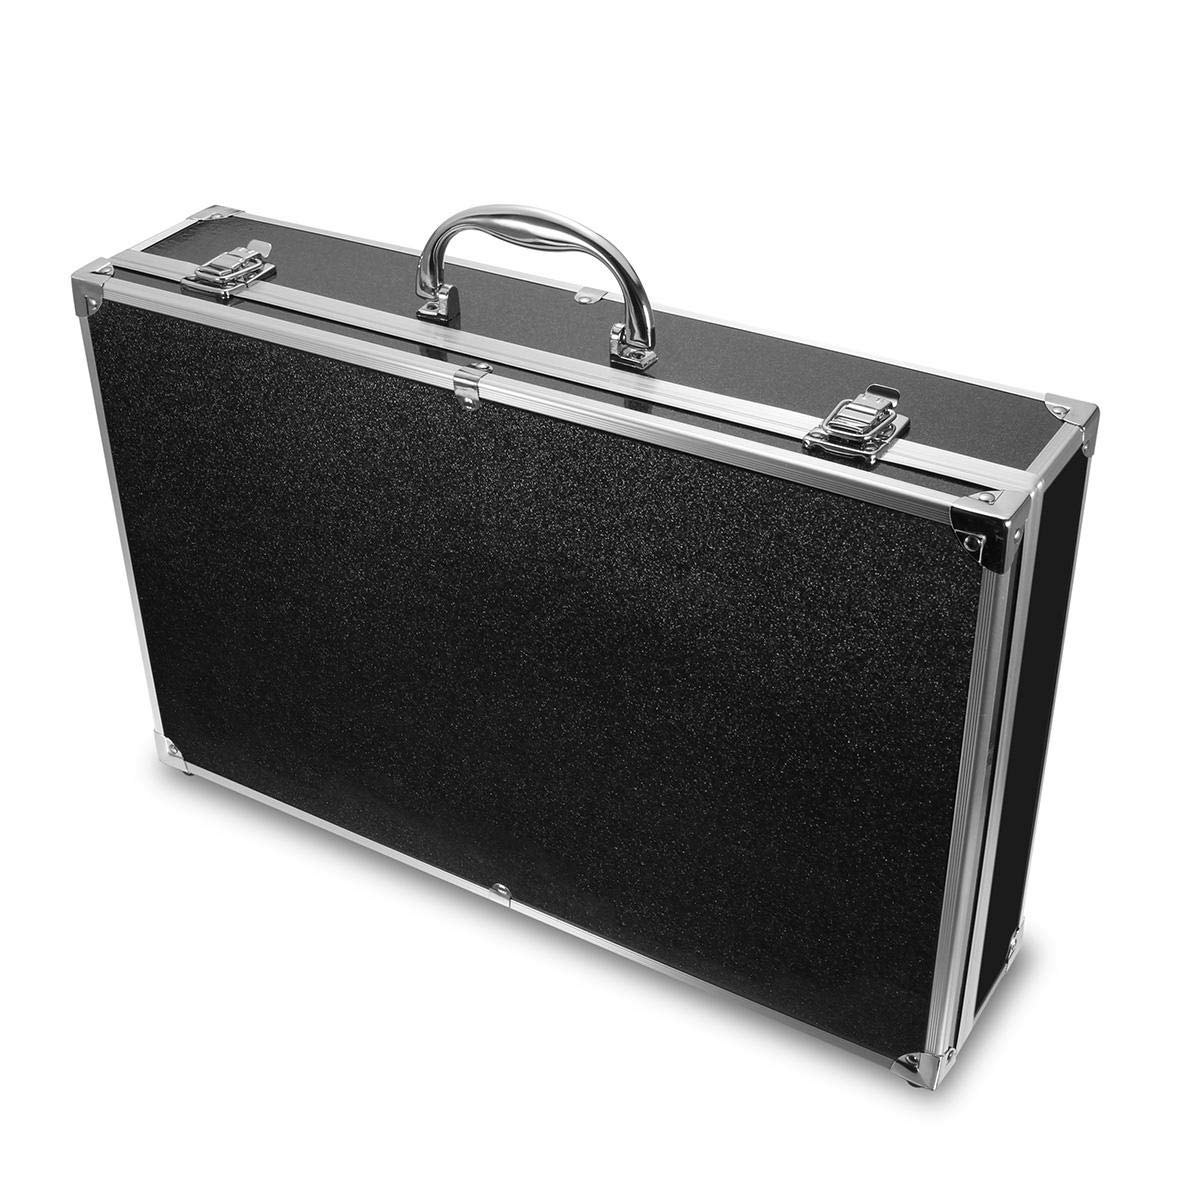 Waterproof Aluminum Case Handy Bag Carry Box For X4 H501S FPV Quadcopter Carrying Case - Hardware & Accessories Storage & Organization - 1x IP65 Switching Power Supply